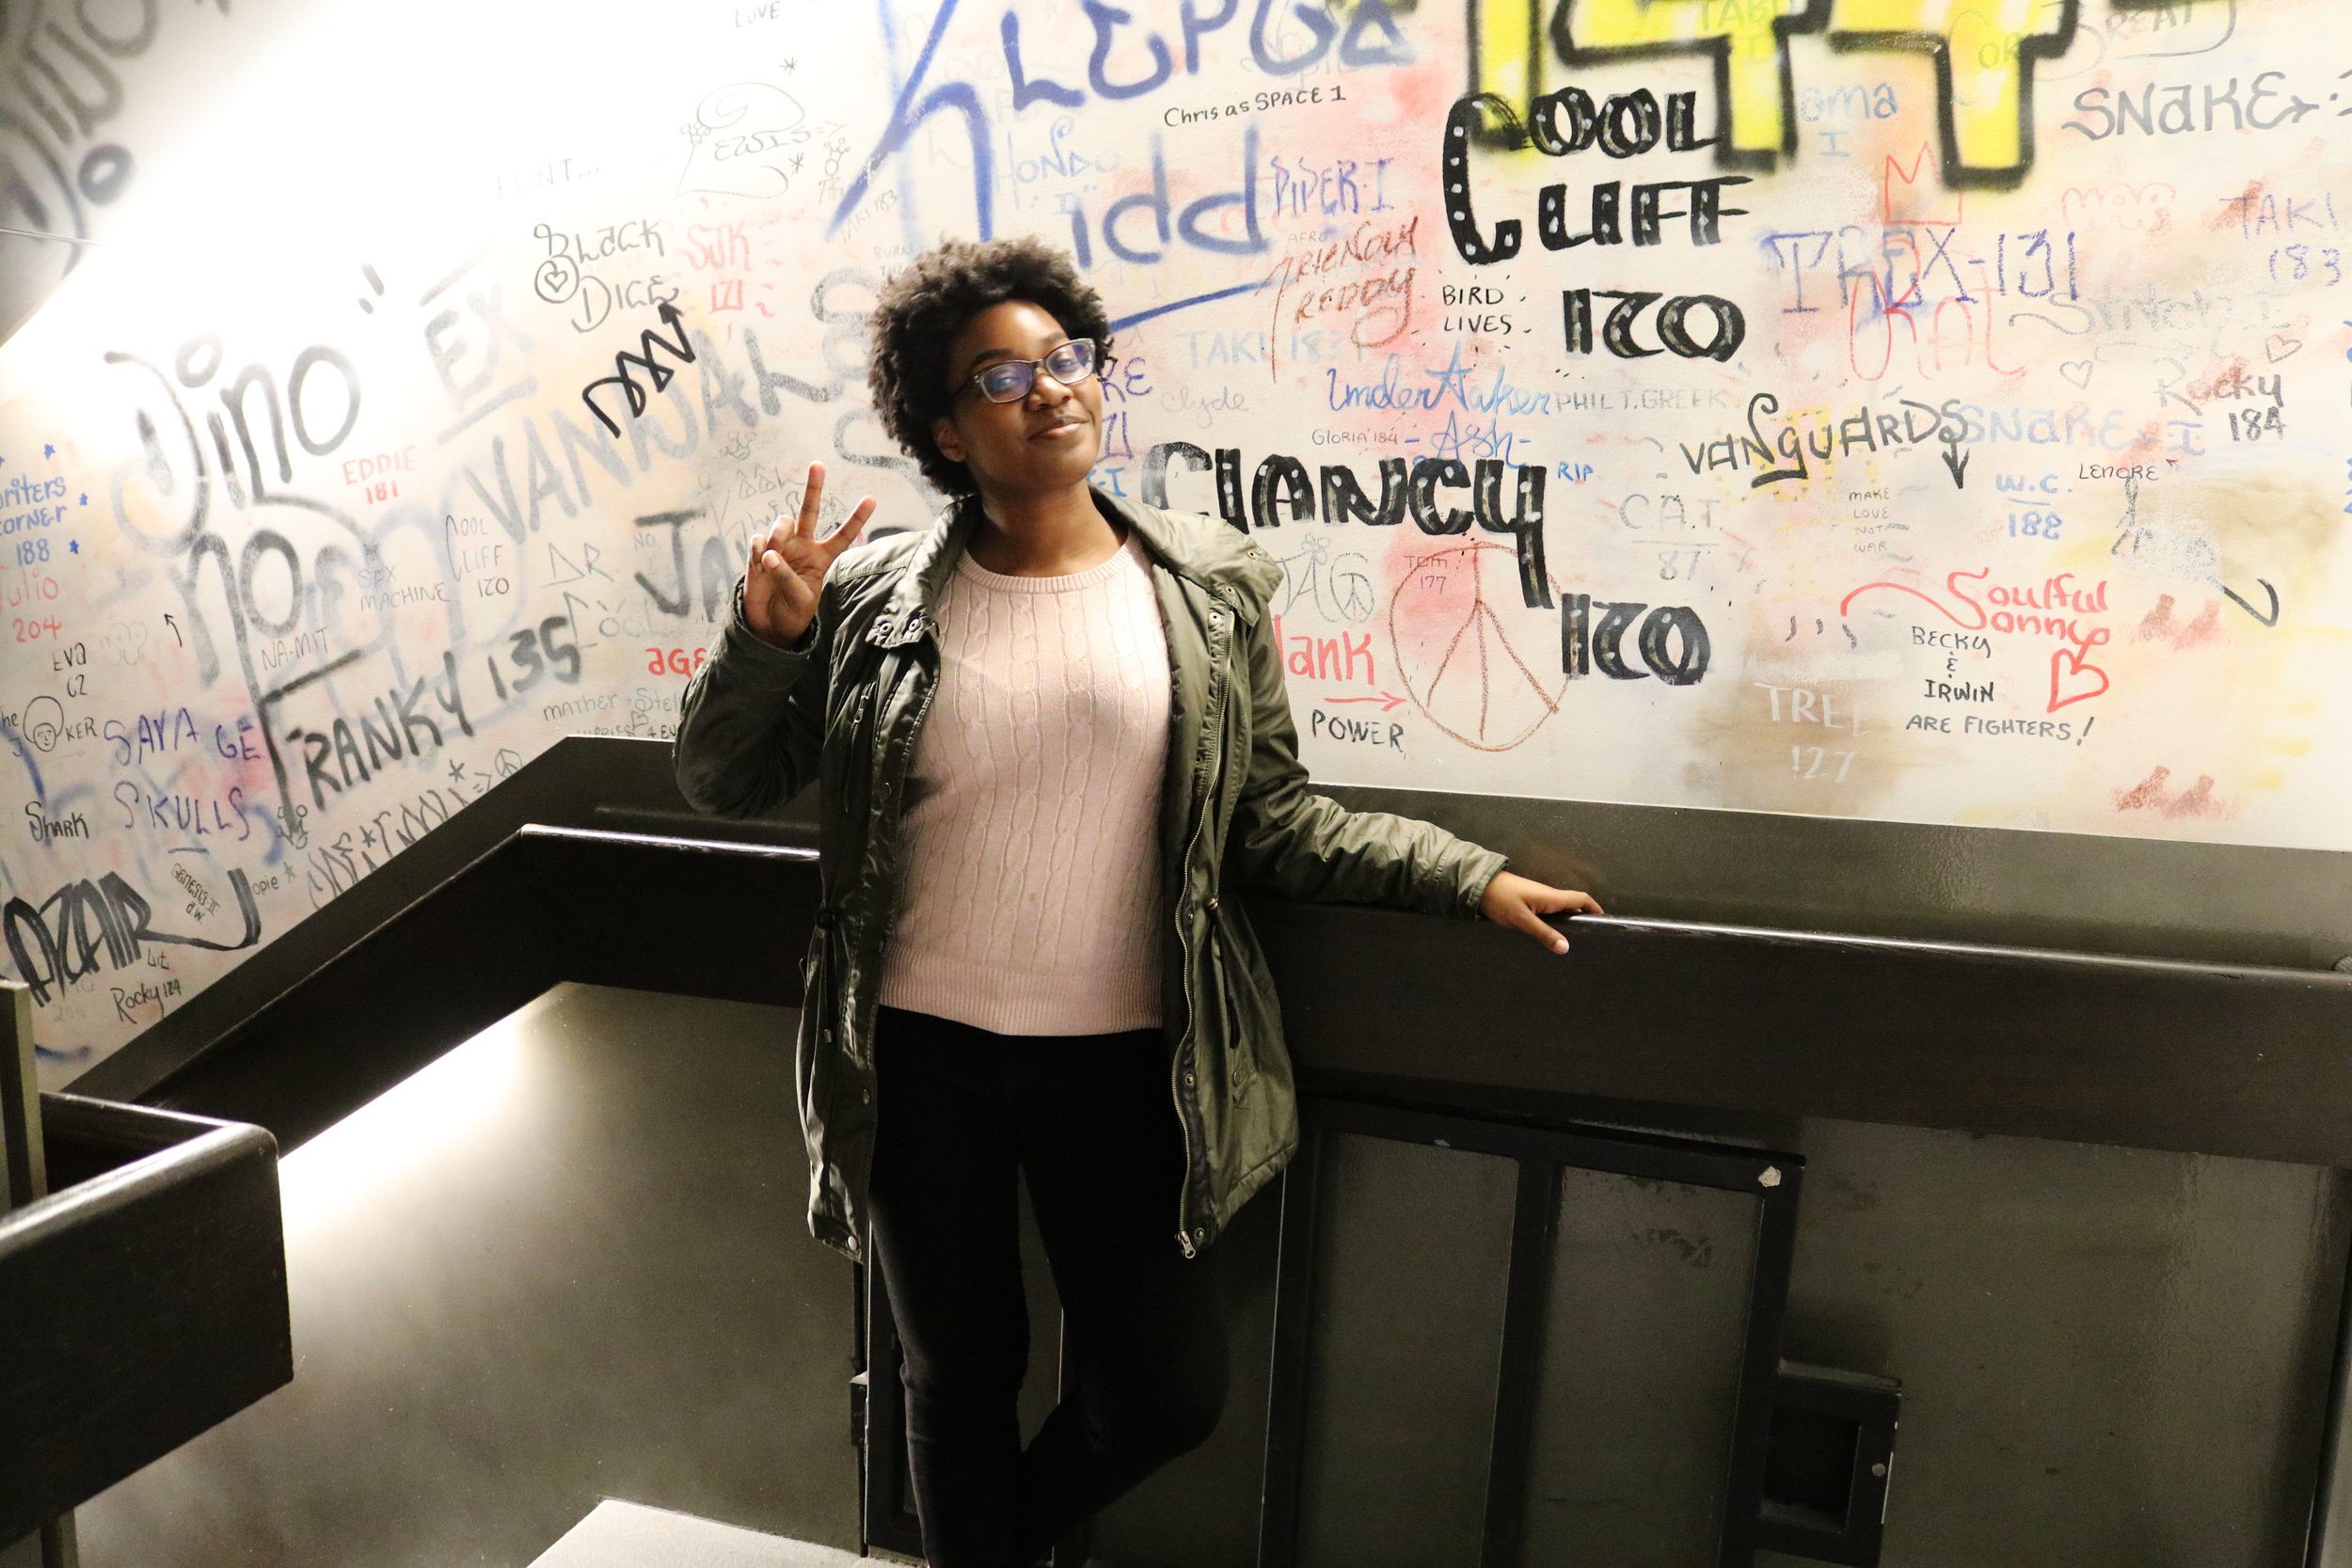 There was a dope graffiti exhibition called Wall Writers: Graffiti in Its Innocence at the MCA. The walls of the stairwells were covered in graffiti.